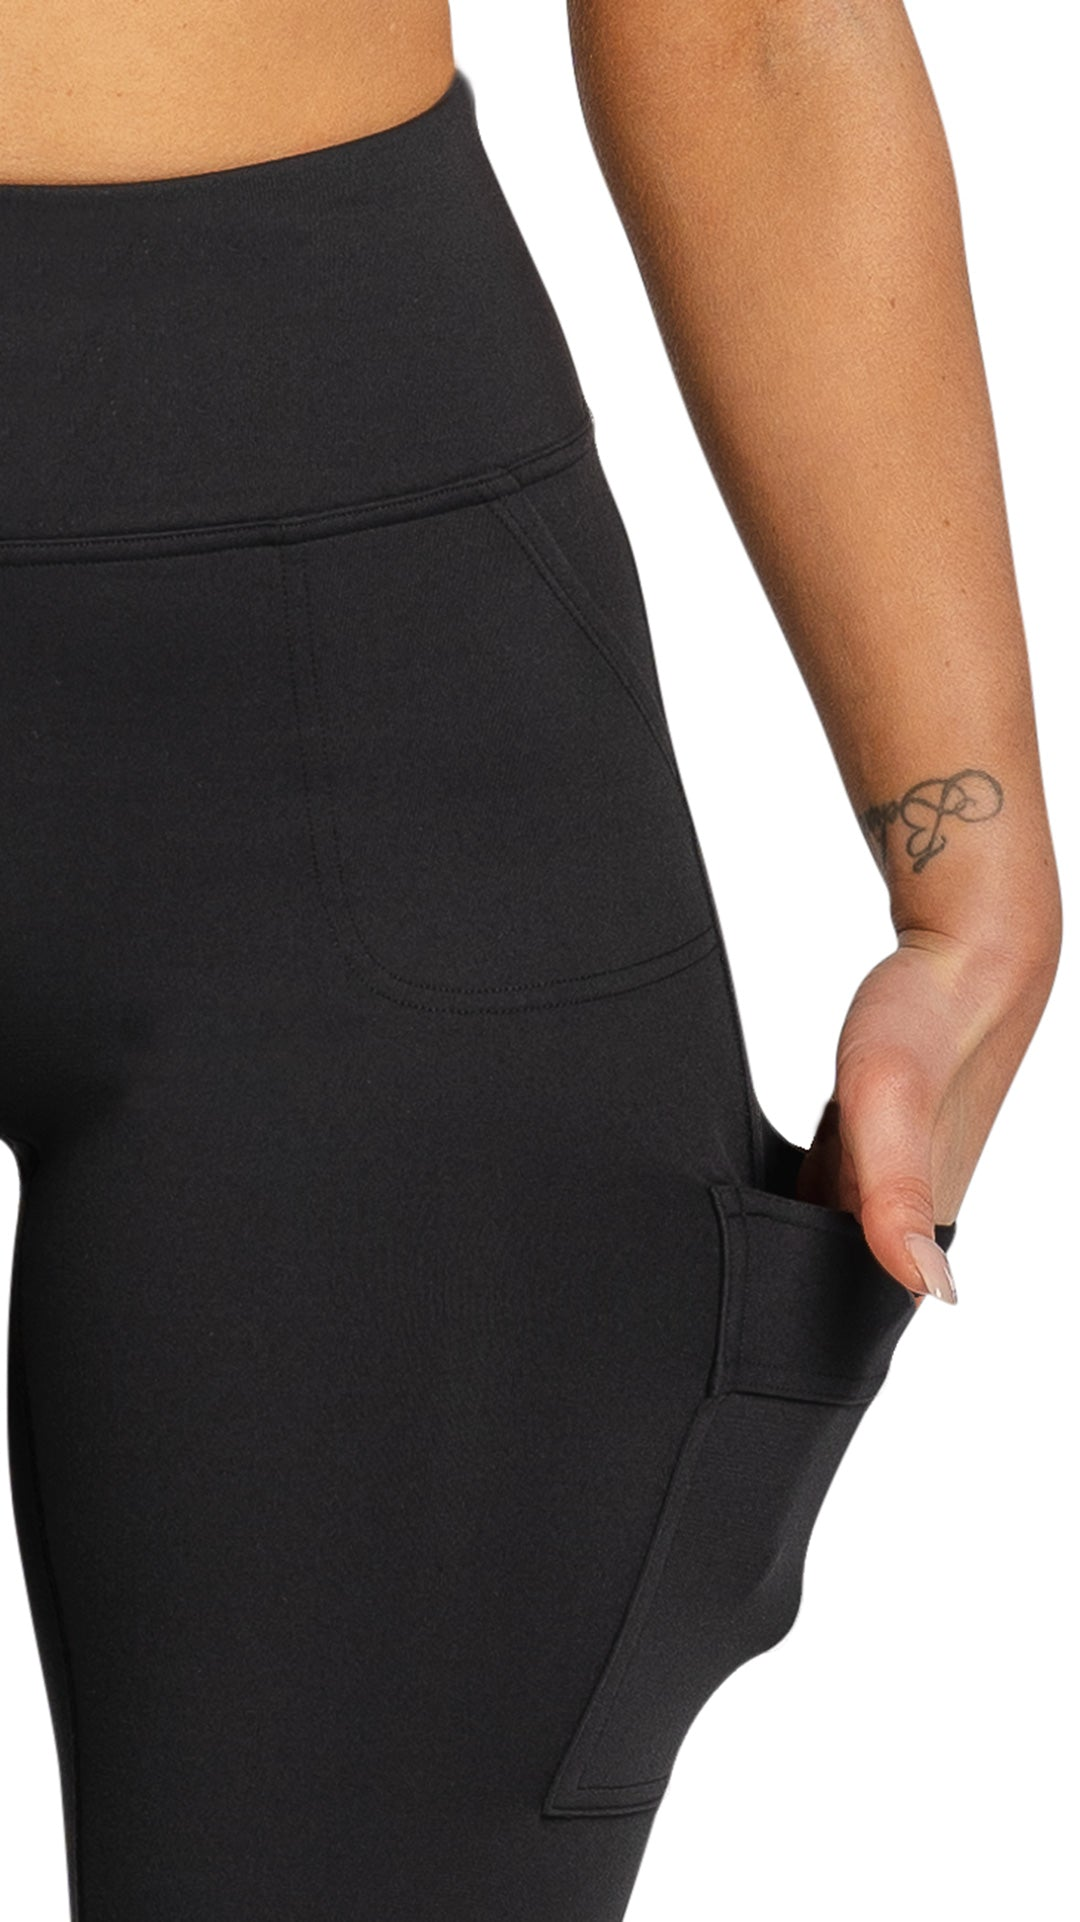 CARGO POCKET BIKE SHORT - BLACK